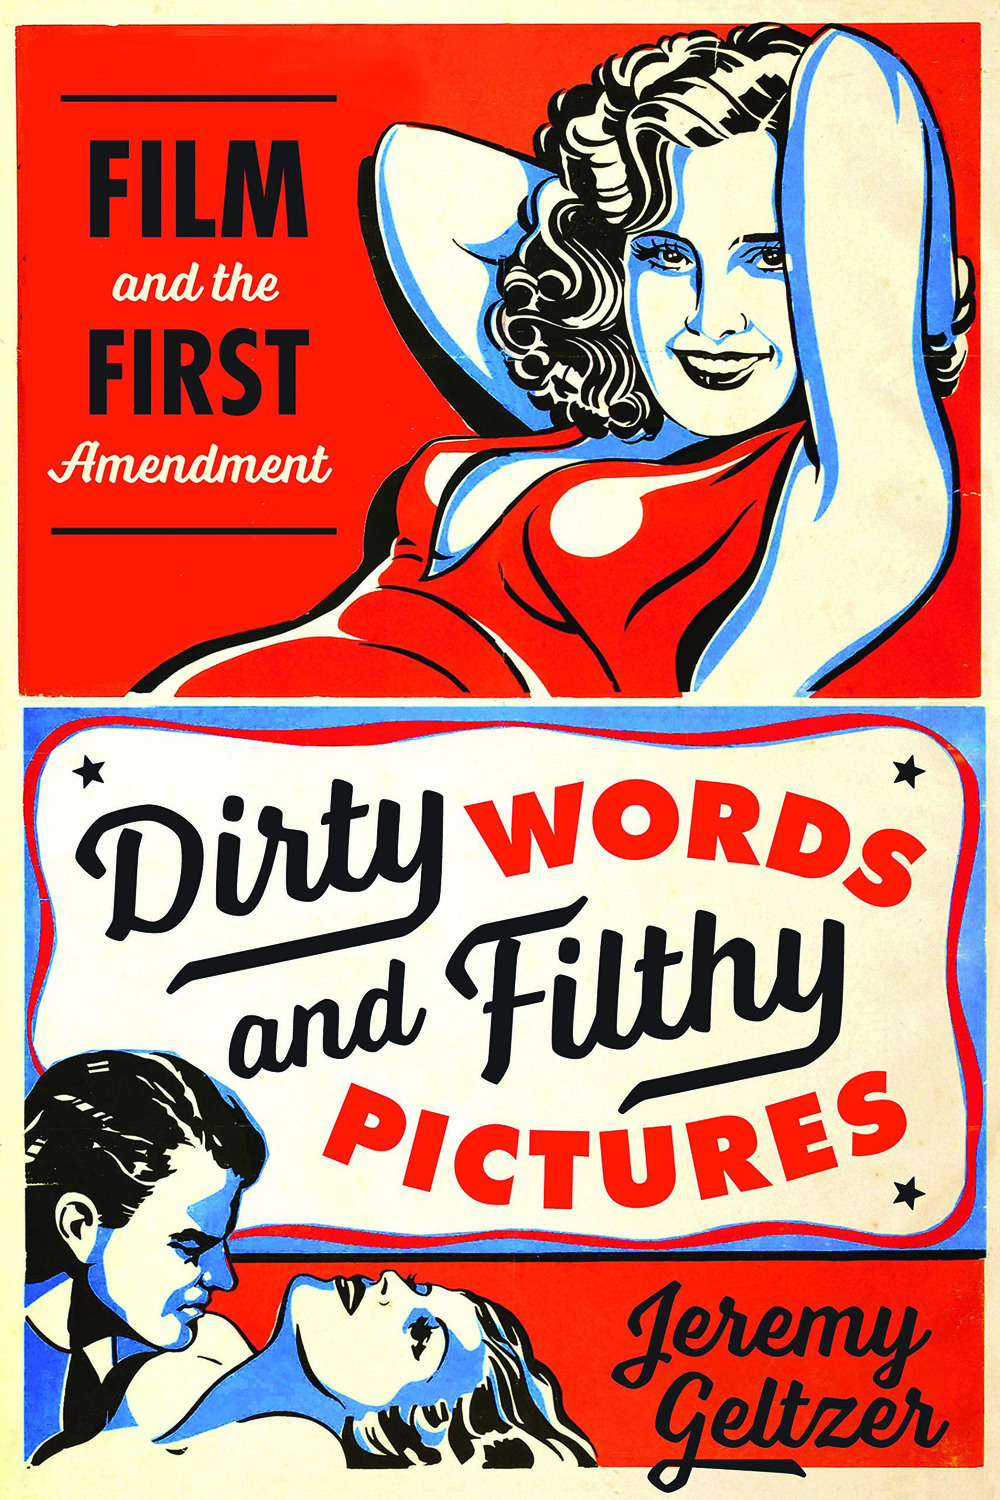 Film and the First Amendment.jpg